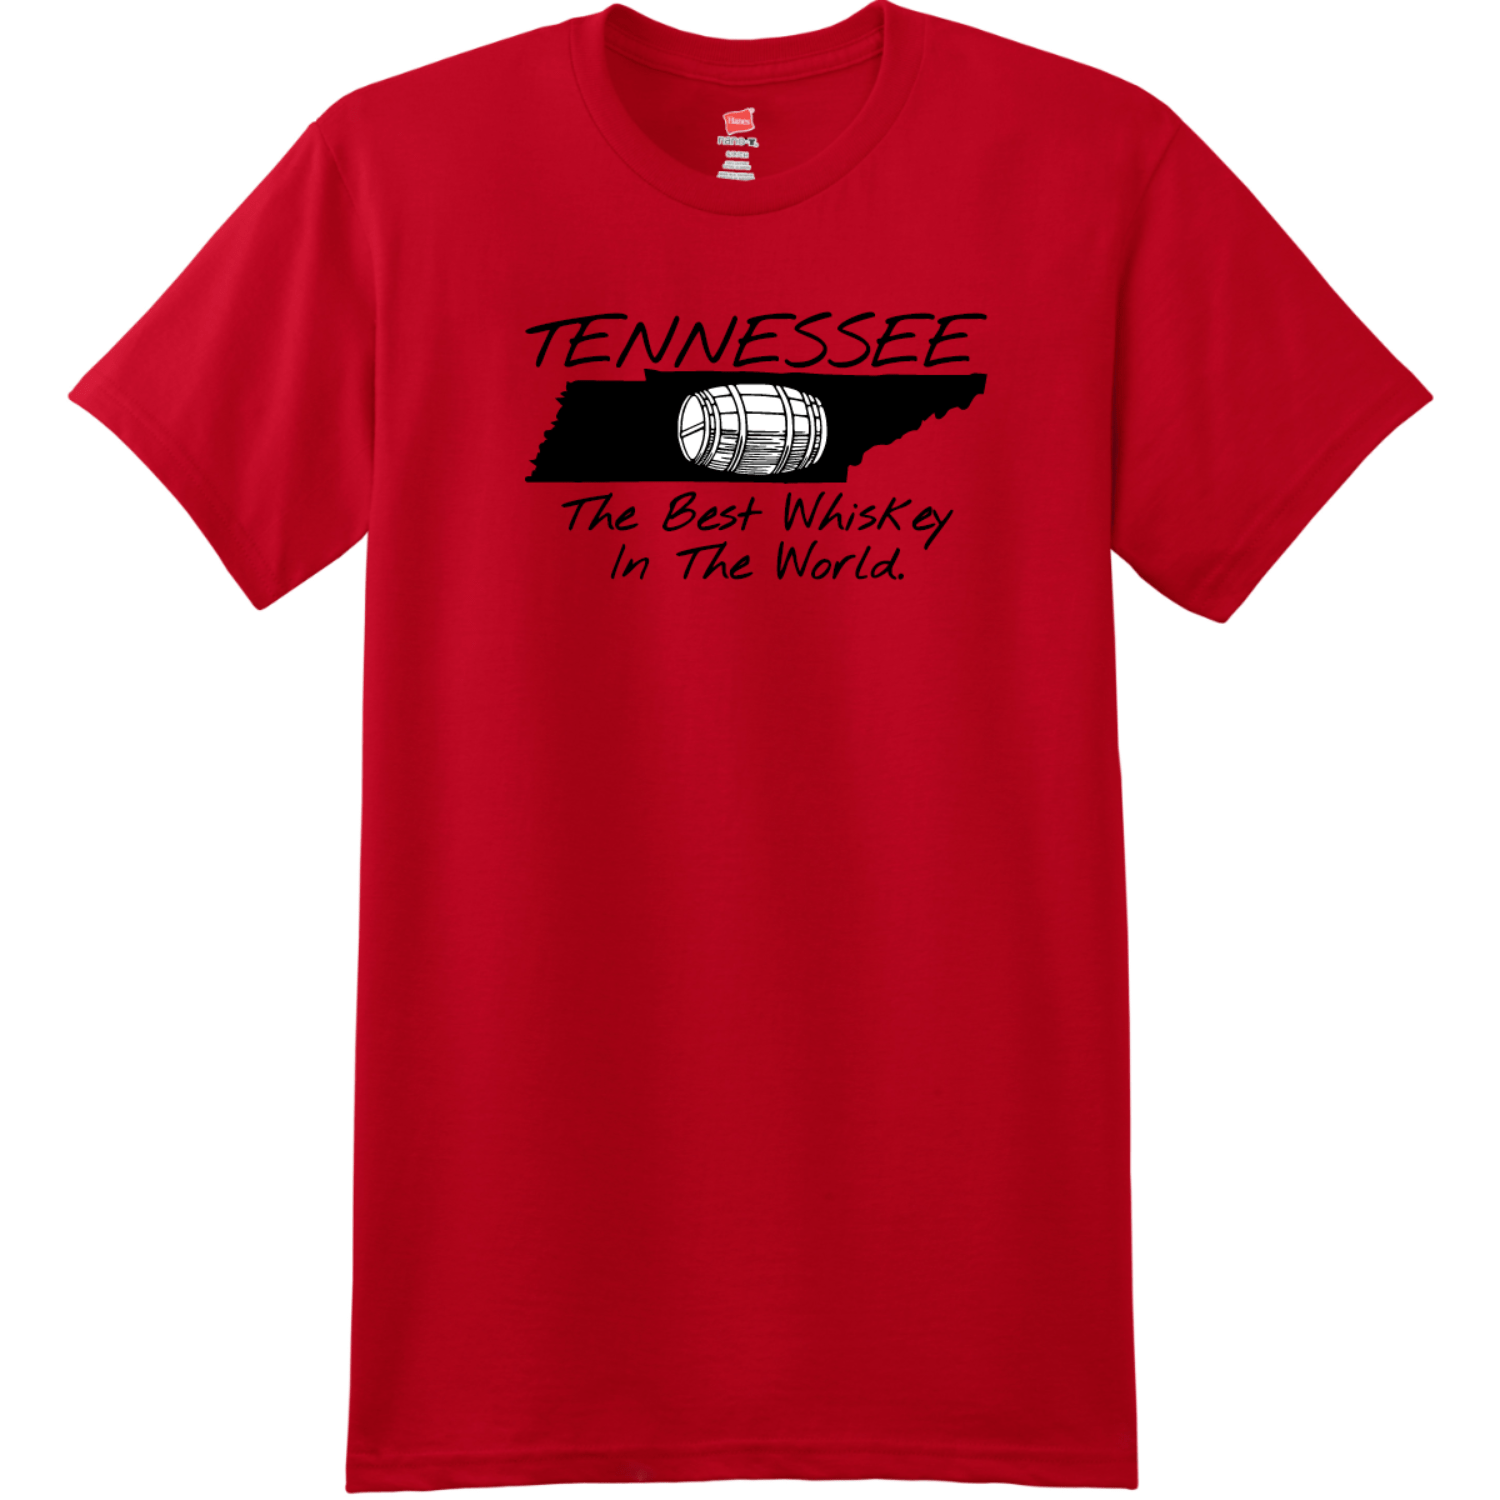 Tennessee Best Whiskey In The World T-Shirt Deep Red Hanes Nano 4980 Ringspun Cotton T Shirt